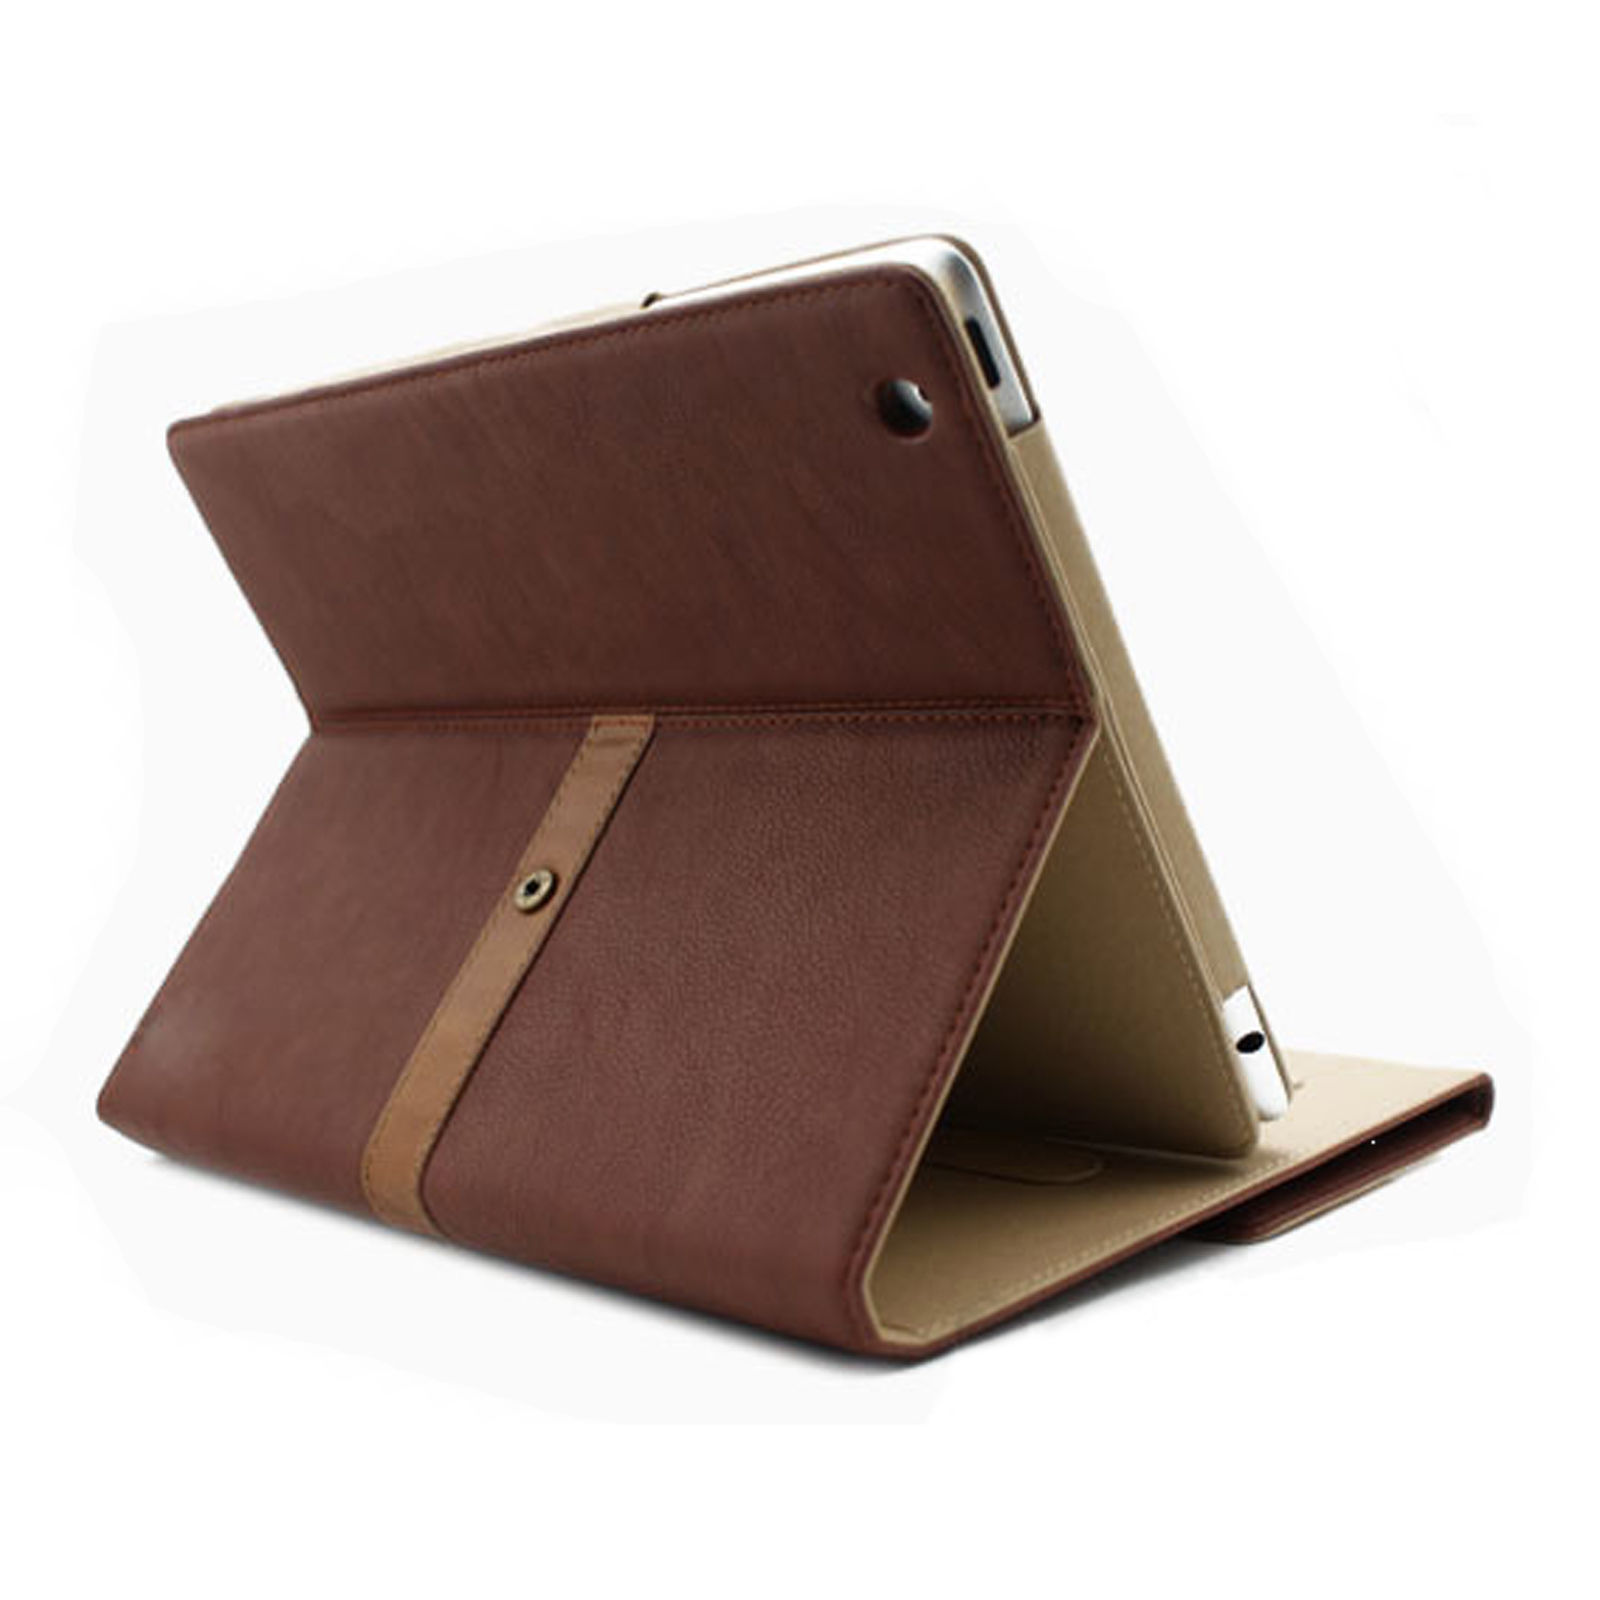 Vintage Book Cover For Ipad Air : Retro vintage buckle leather business smart case cover for